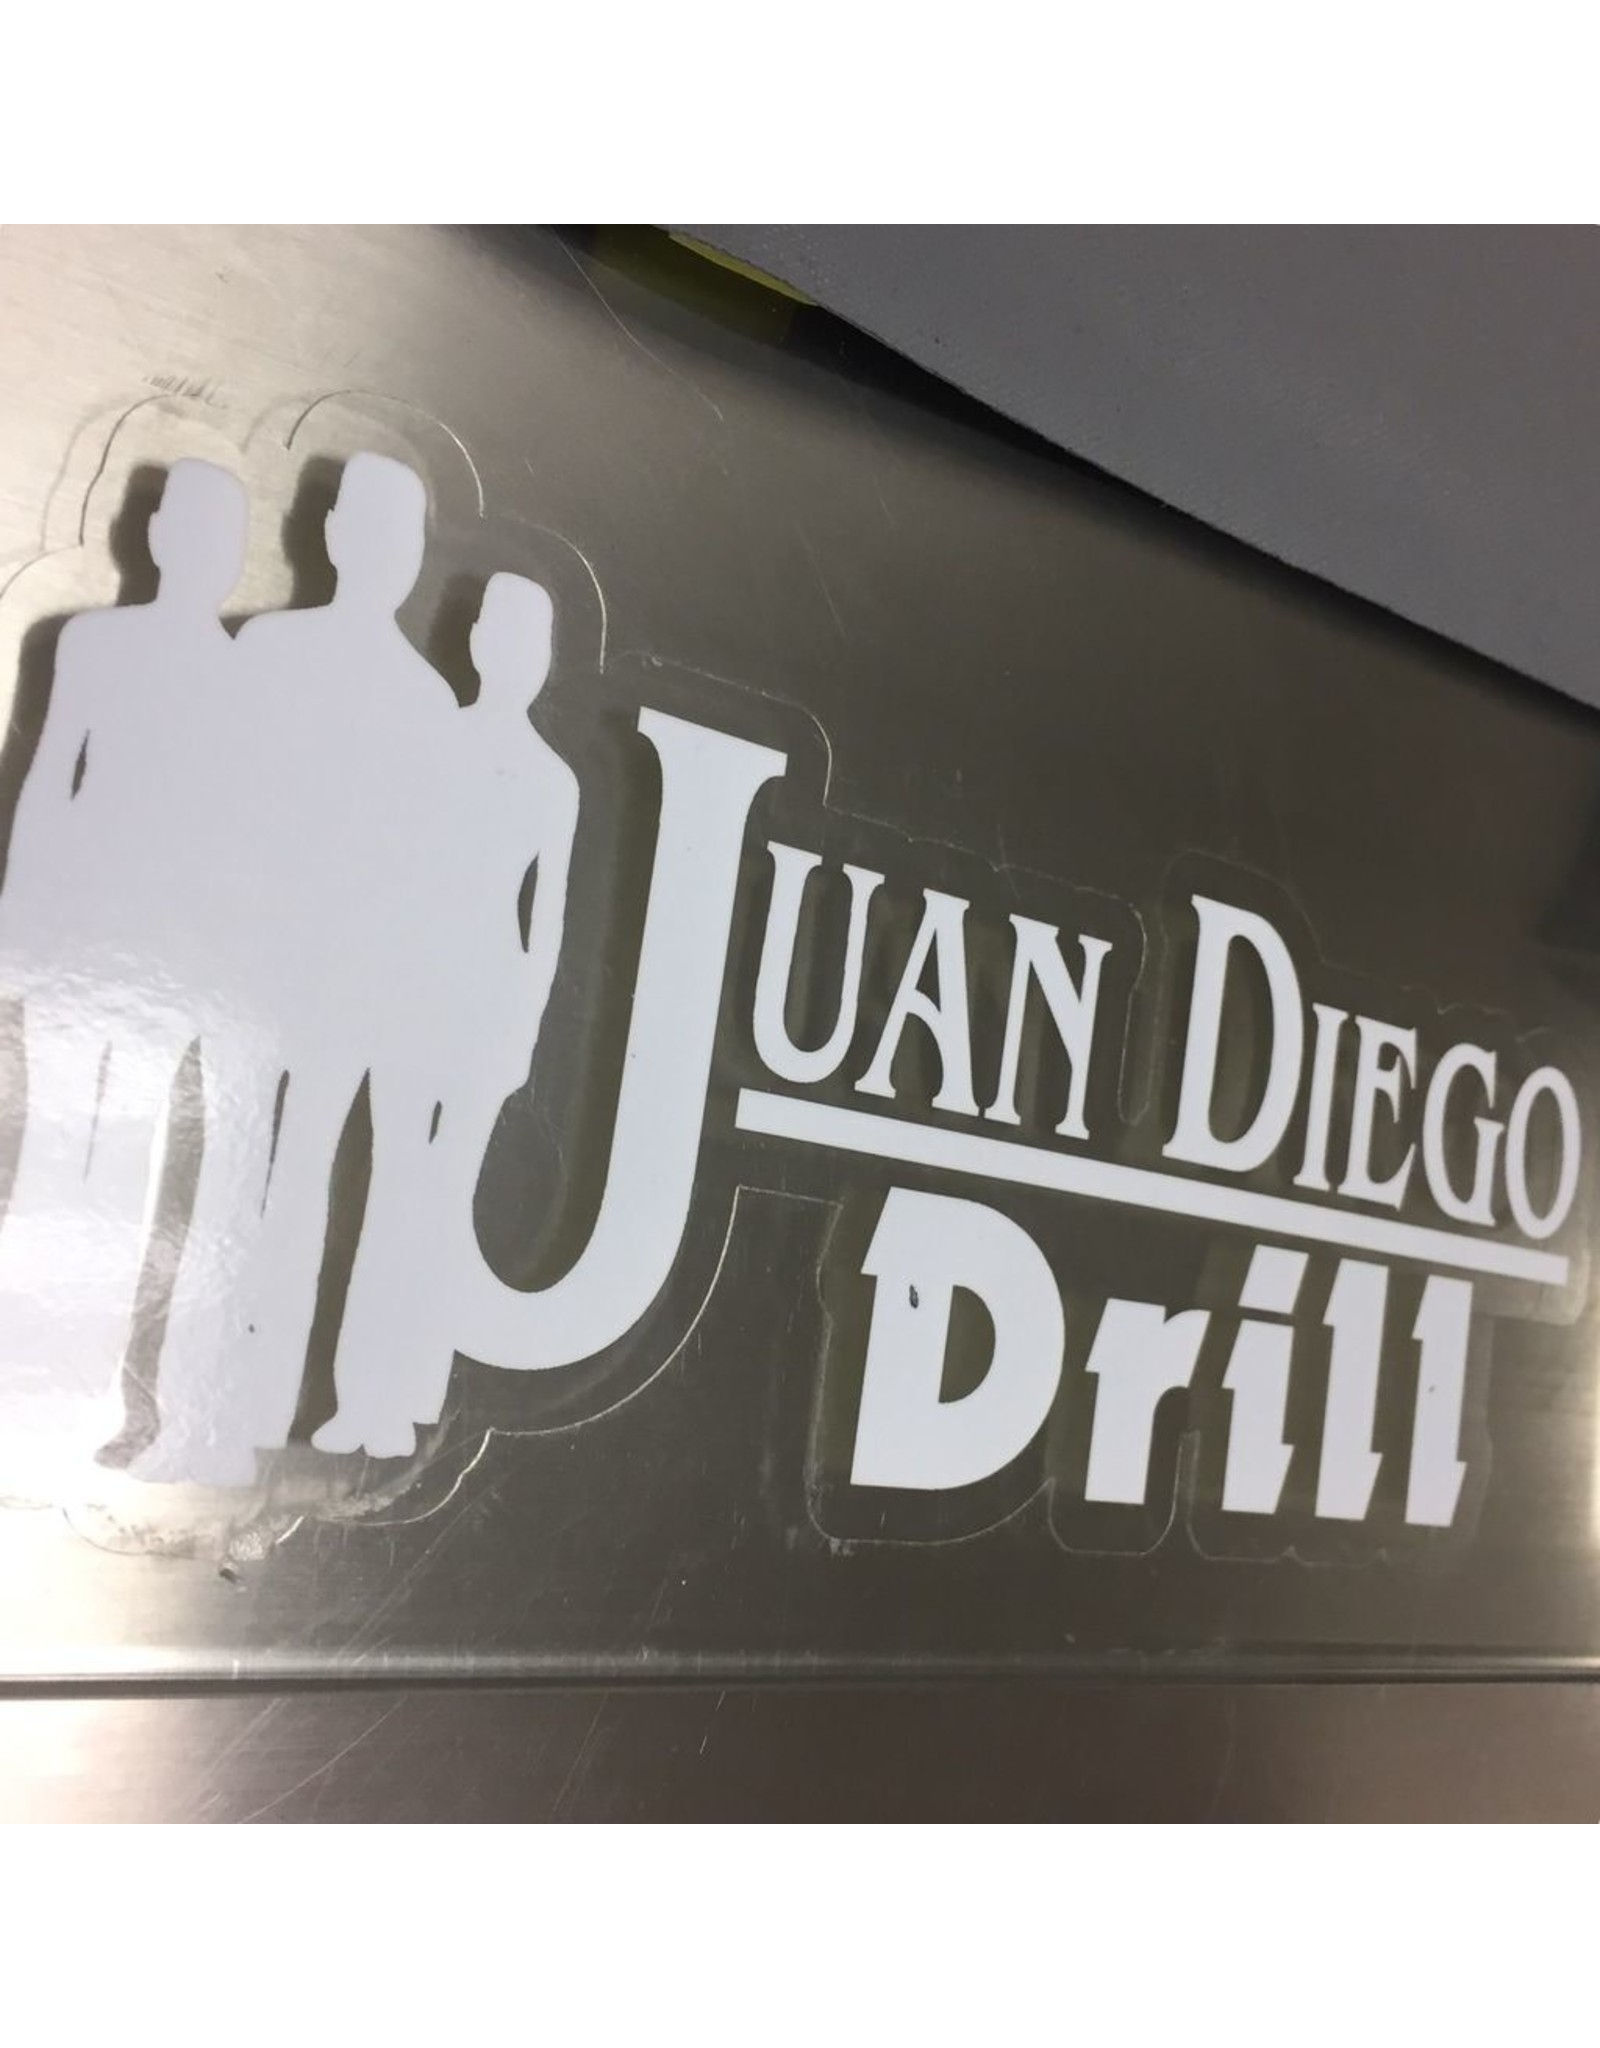 NON-UNIFORM Drill - Decal, clearance, sold as is